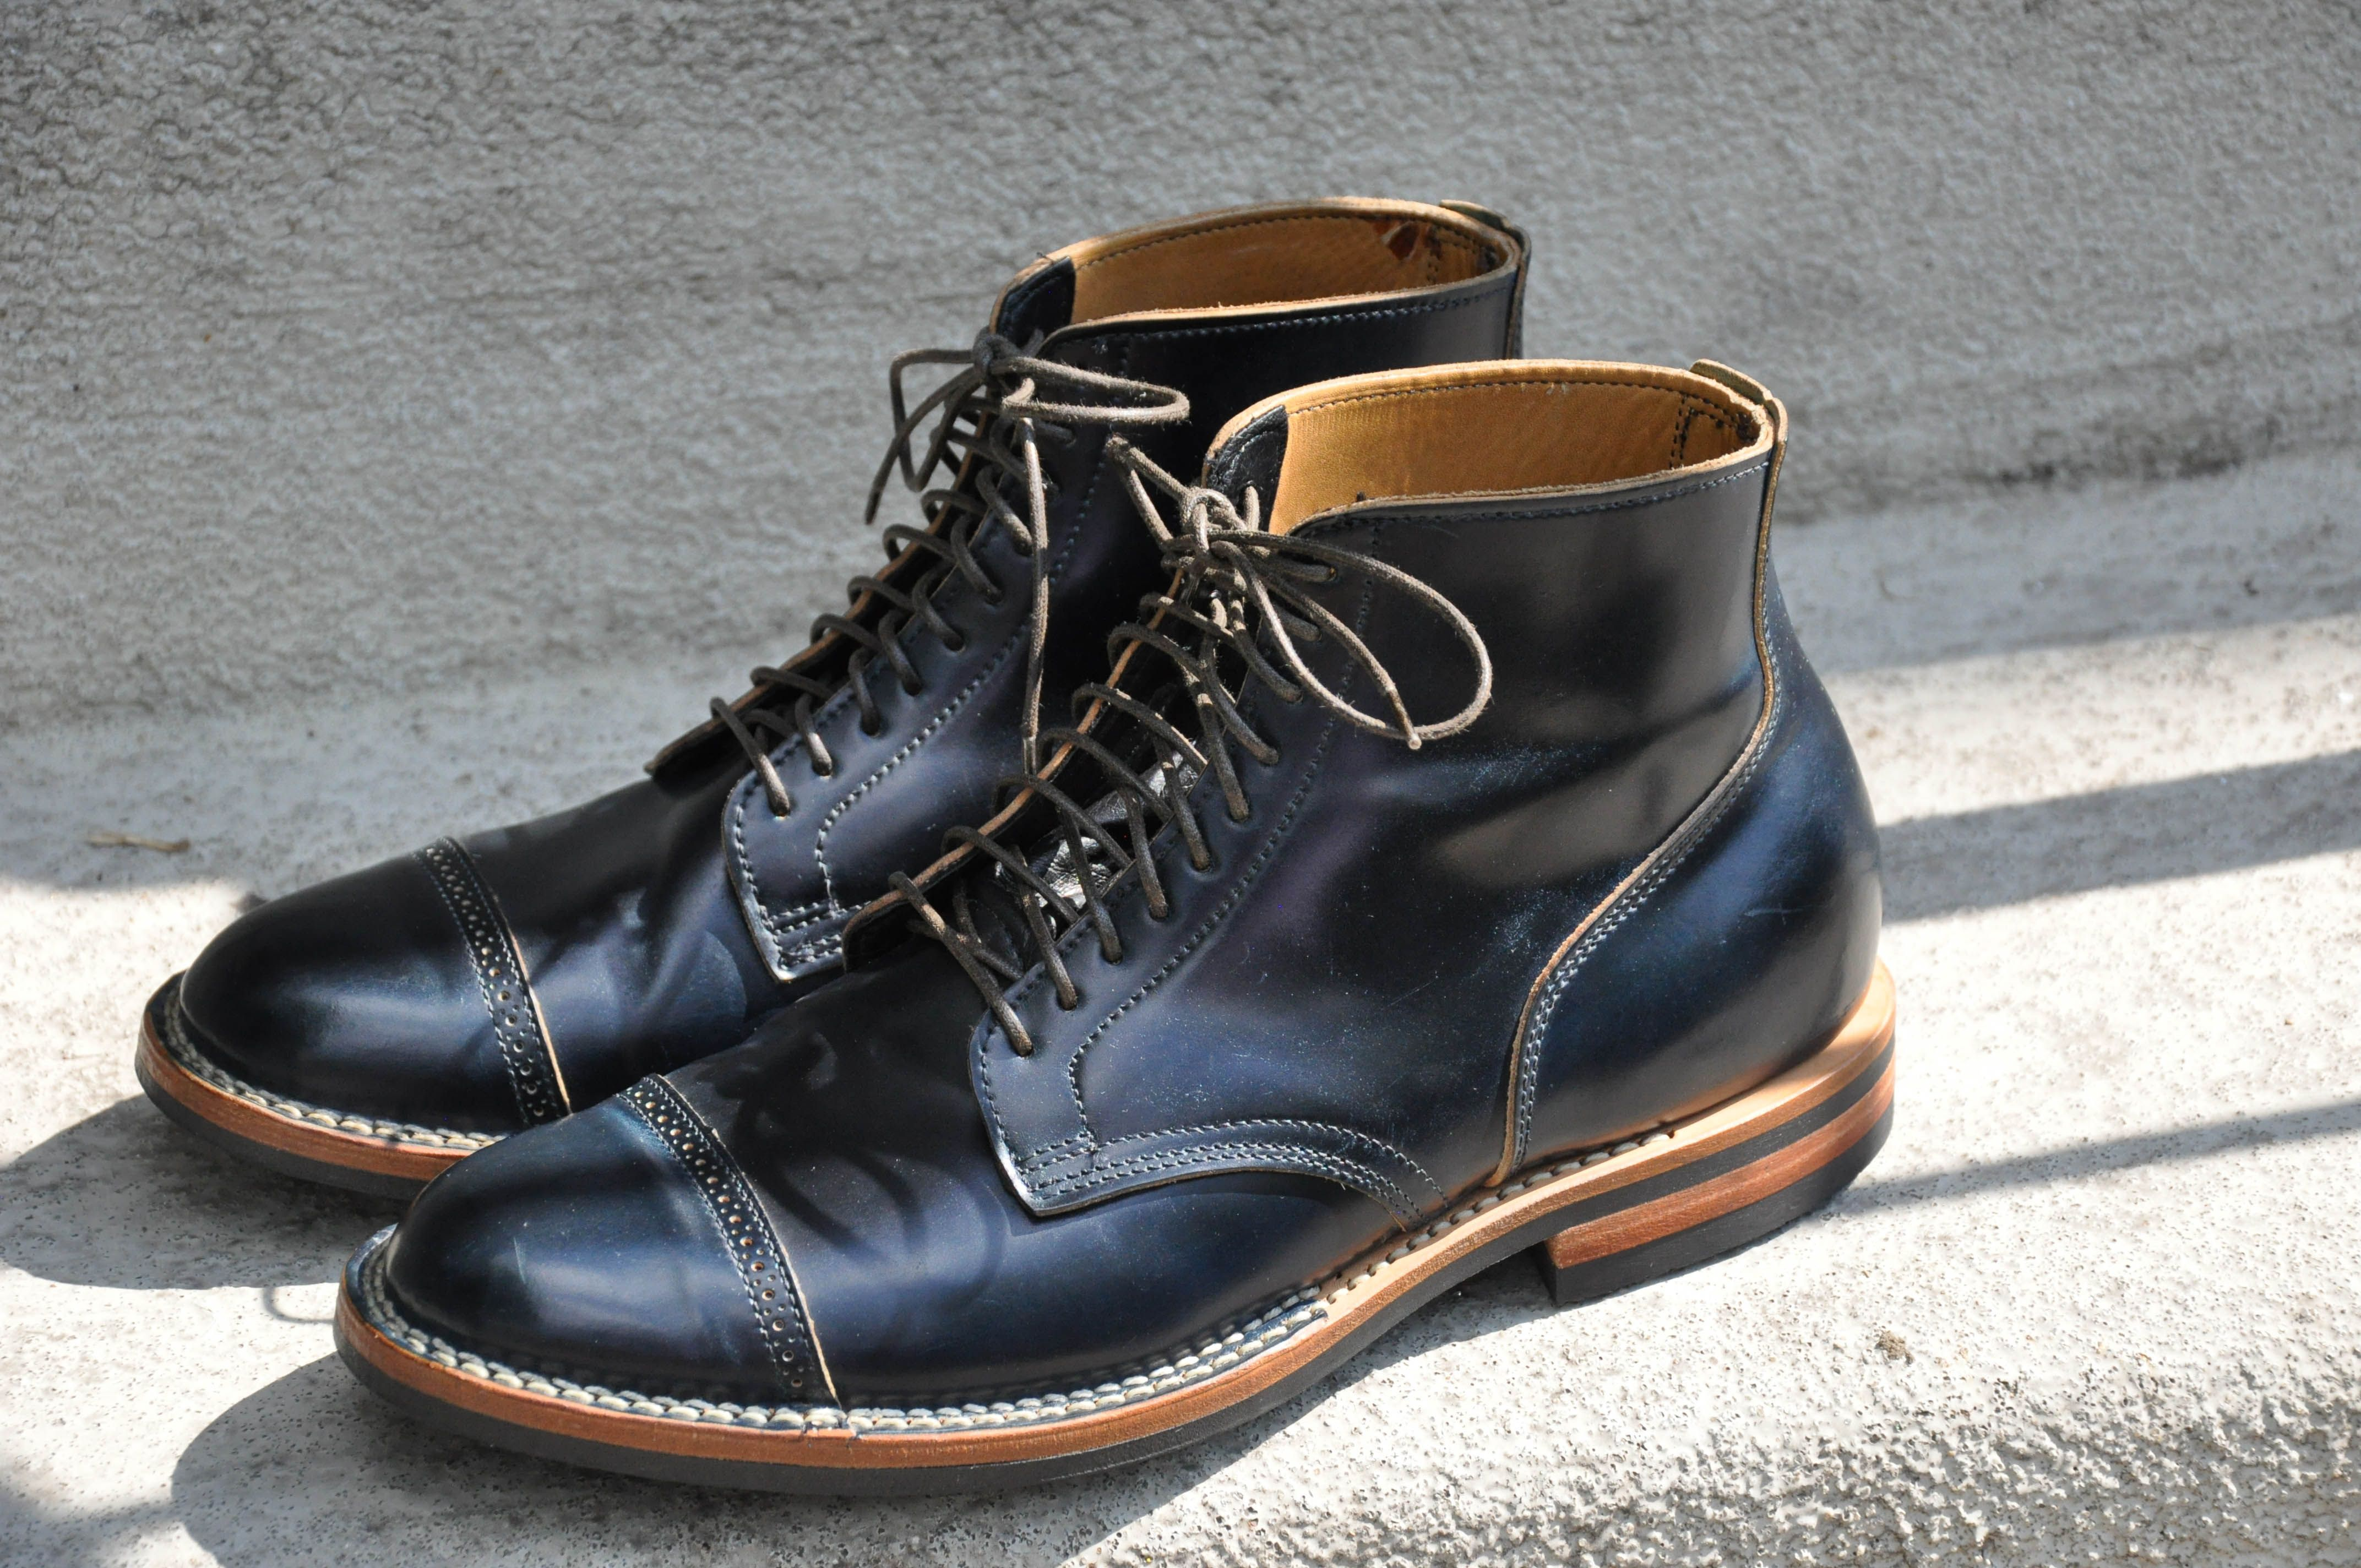 d2429db02fd viberg navy shell cordovan stitchdown service boots in 2019 | Men's ...